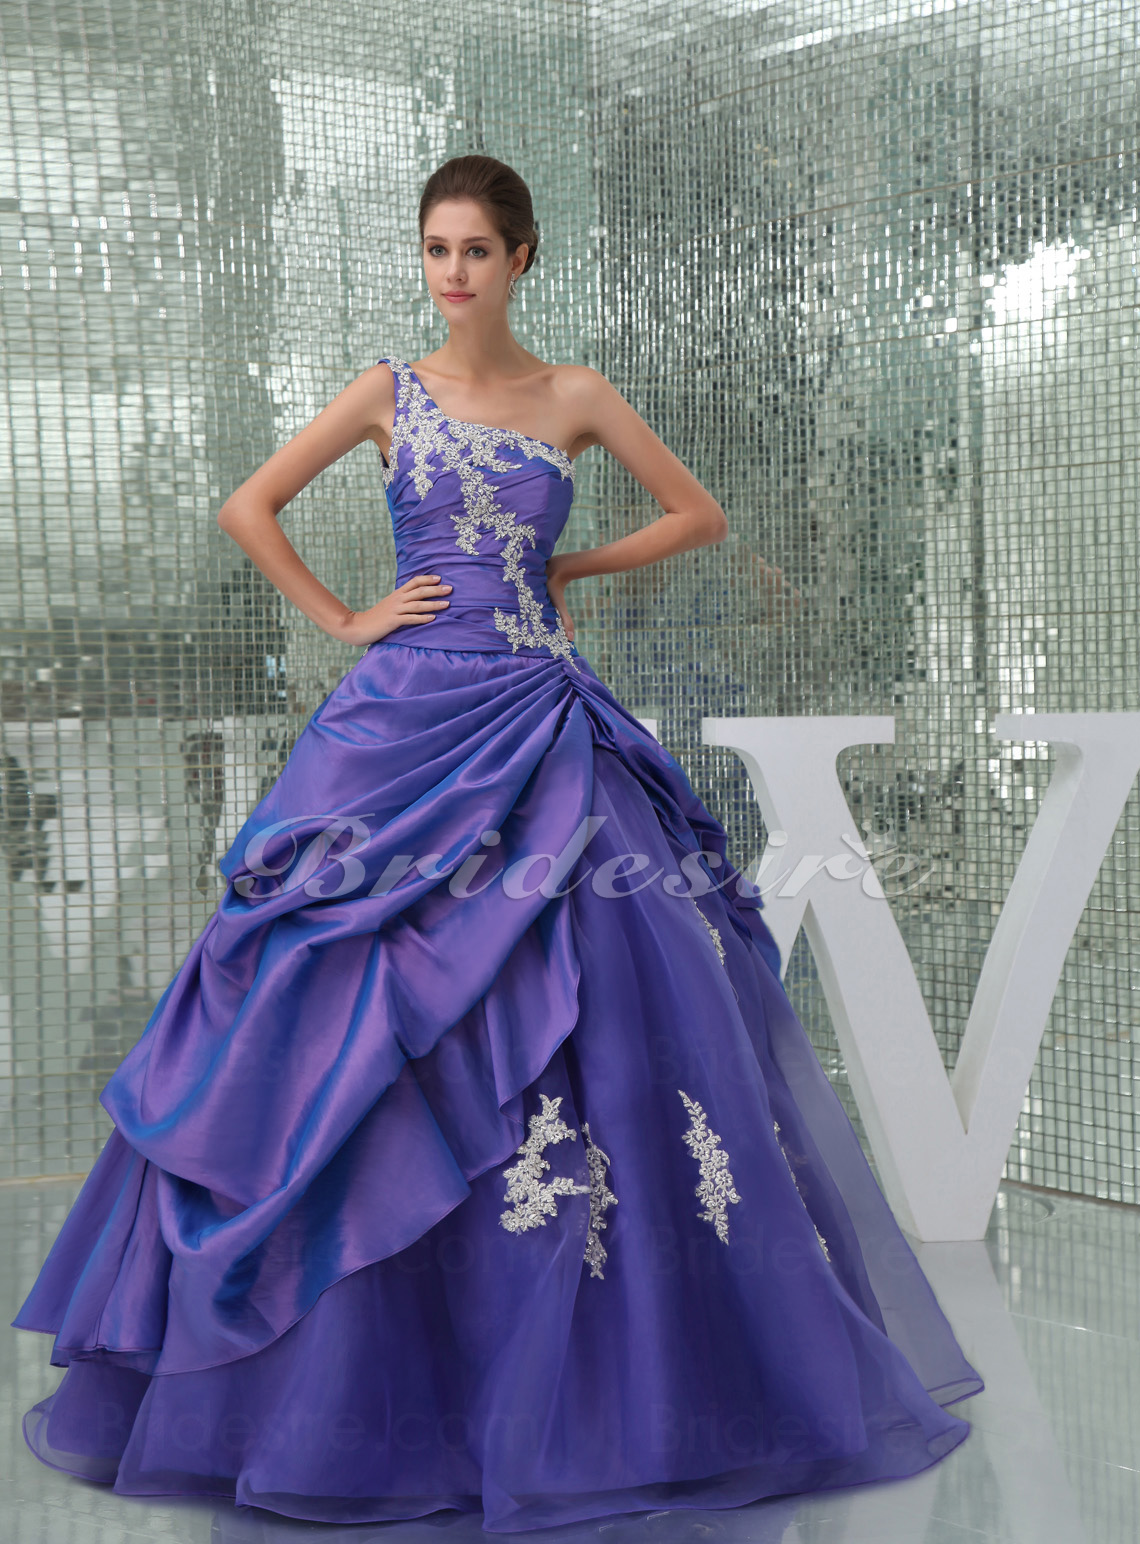 Ball Gown One Shoulder Floor-length Sleeveless Taffeta Organza Dress